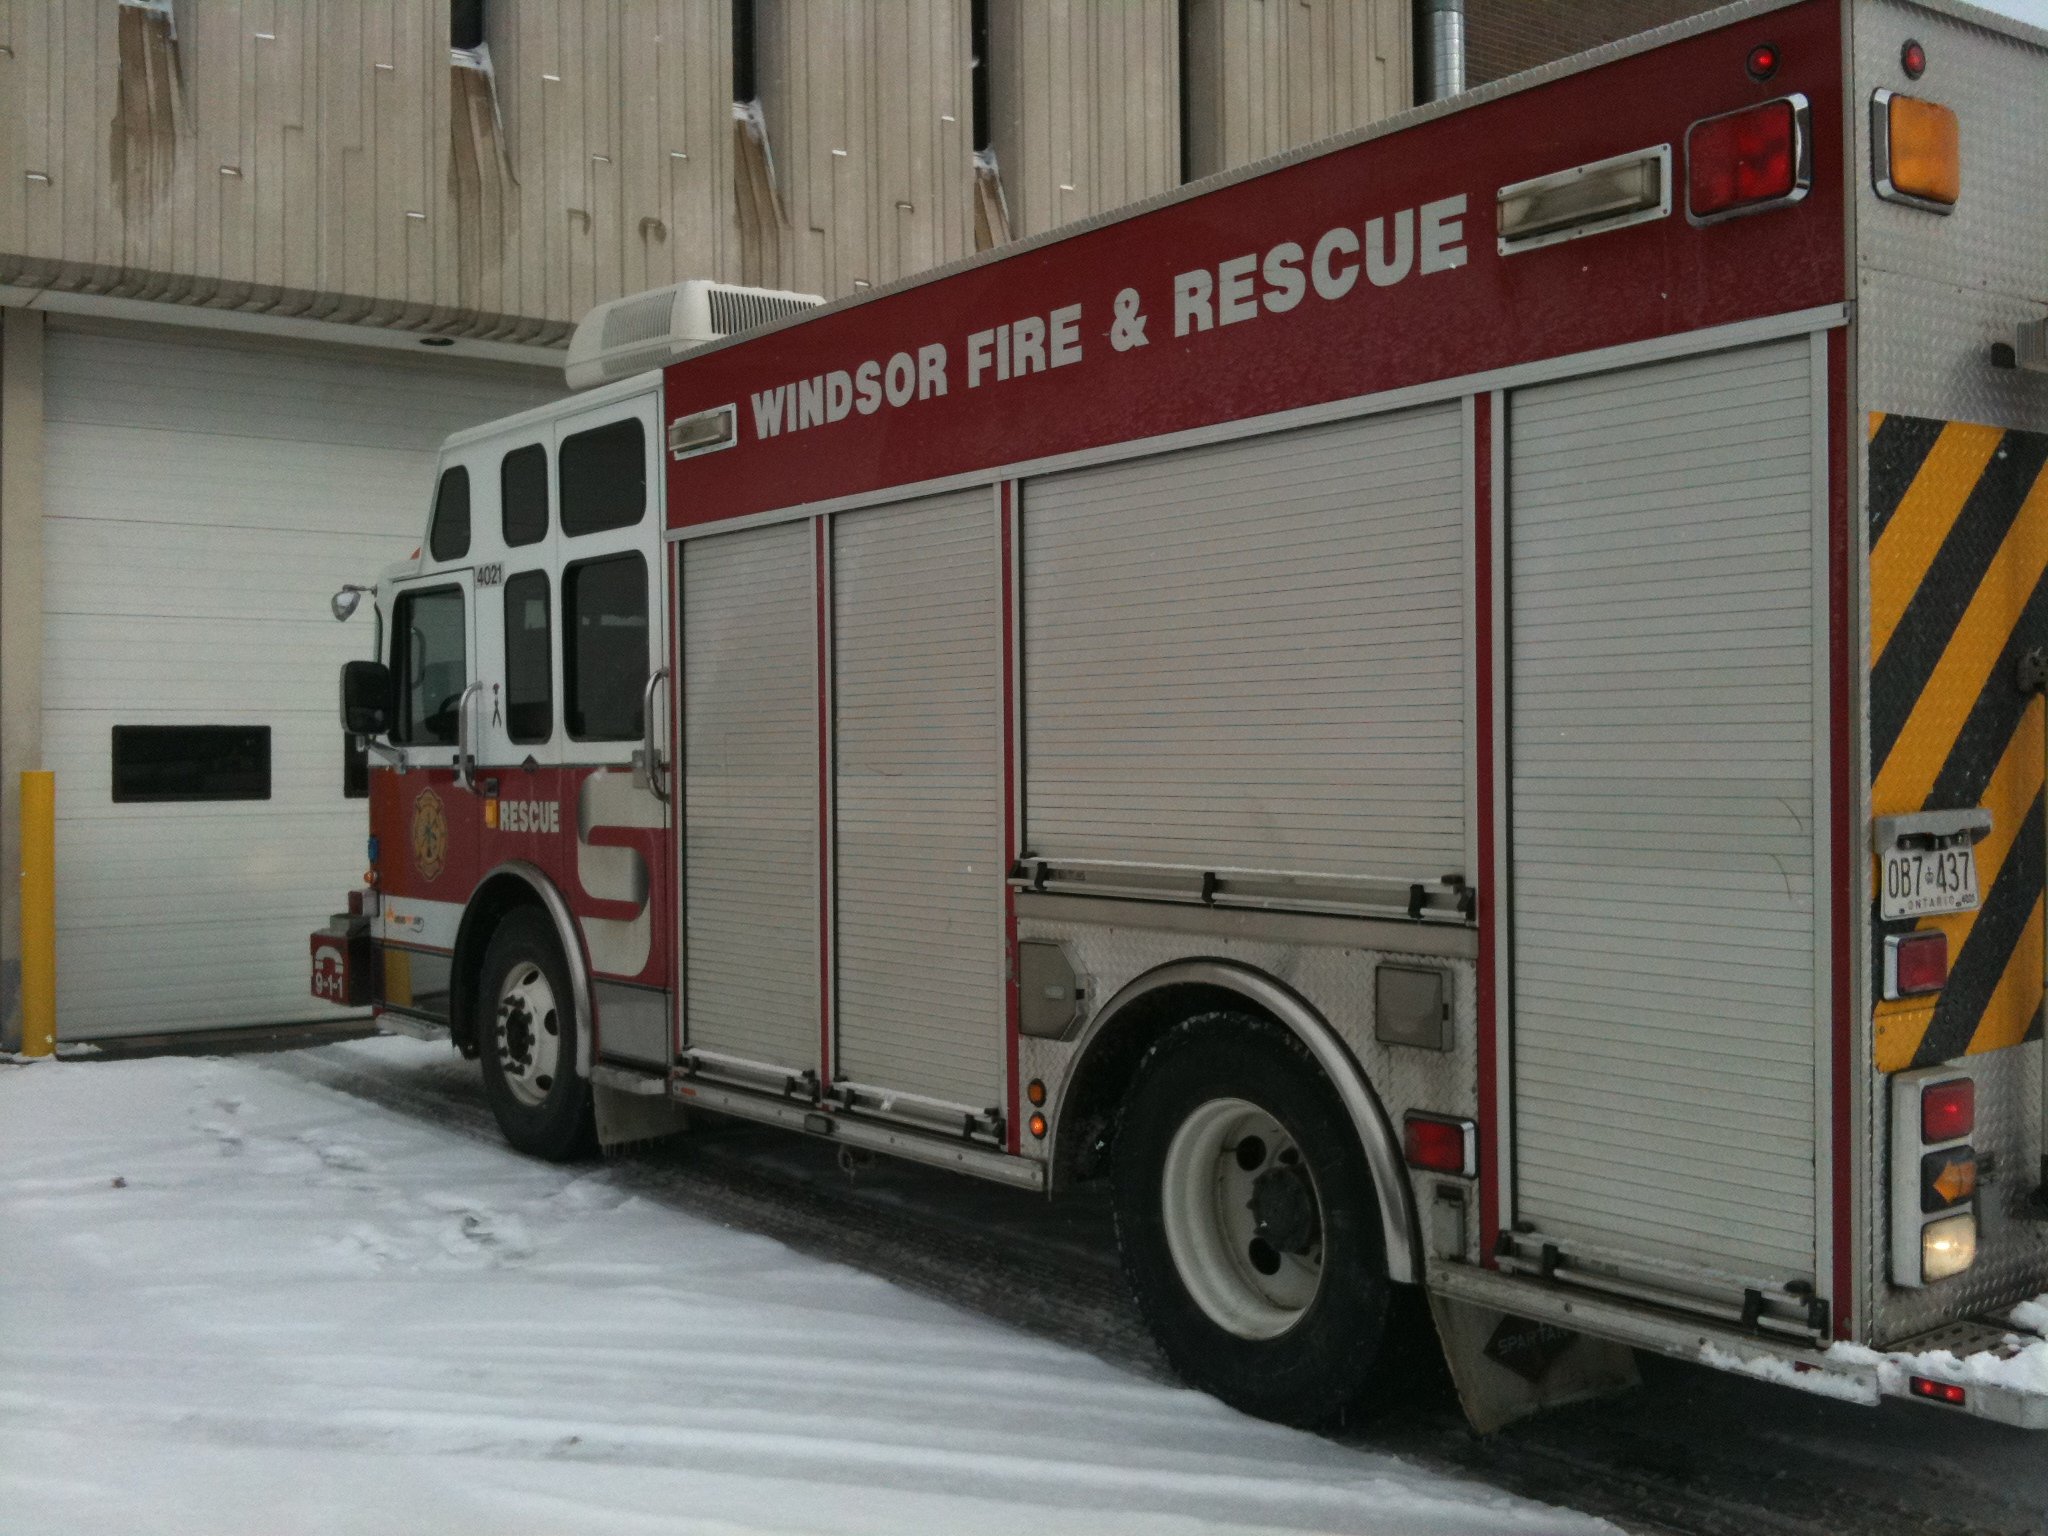 Windsor Fire and Rescue Services truck. (BlackburnNews.com file photo.)